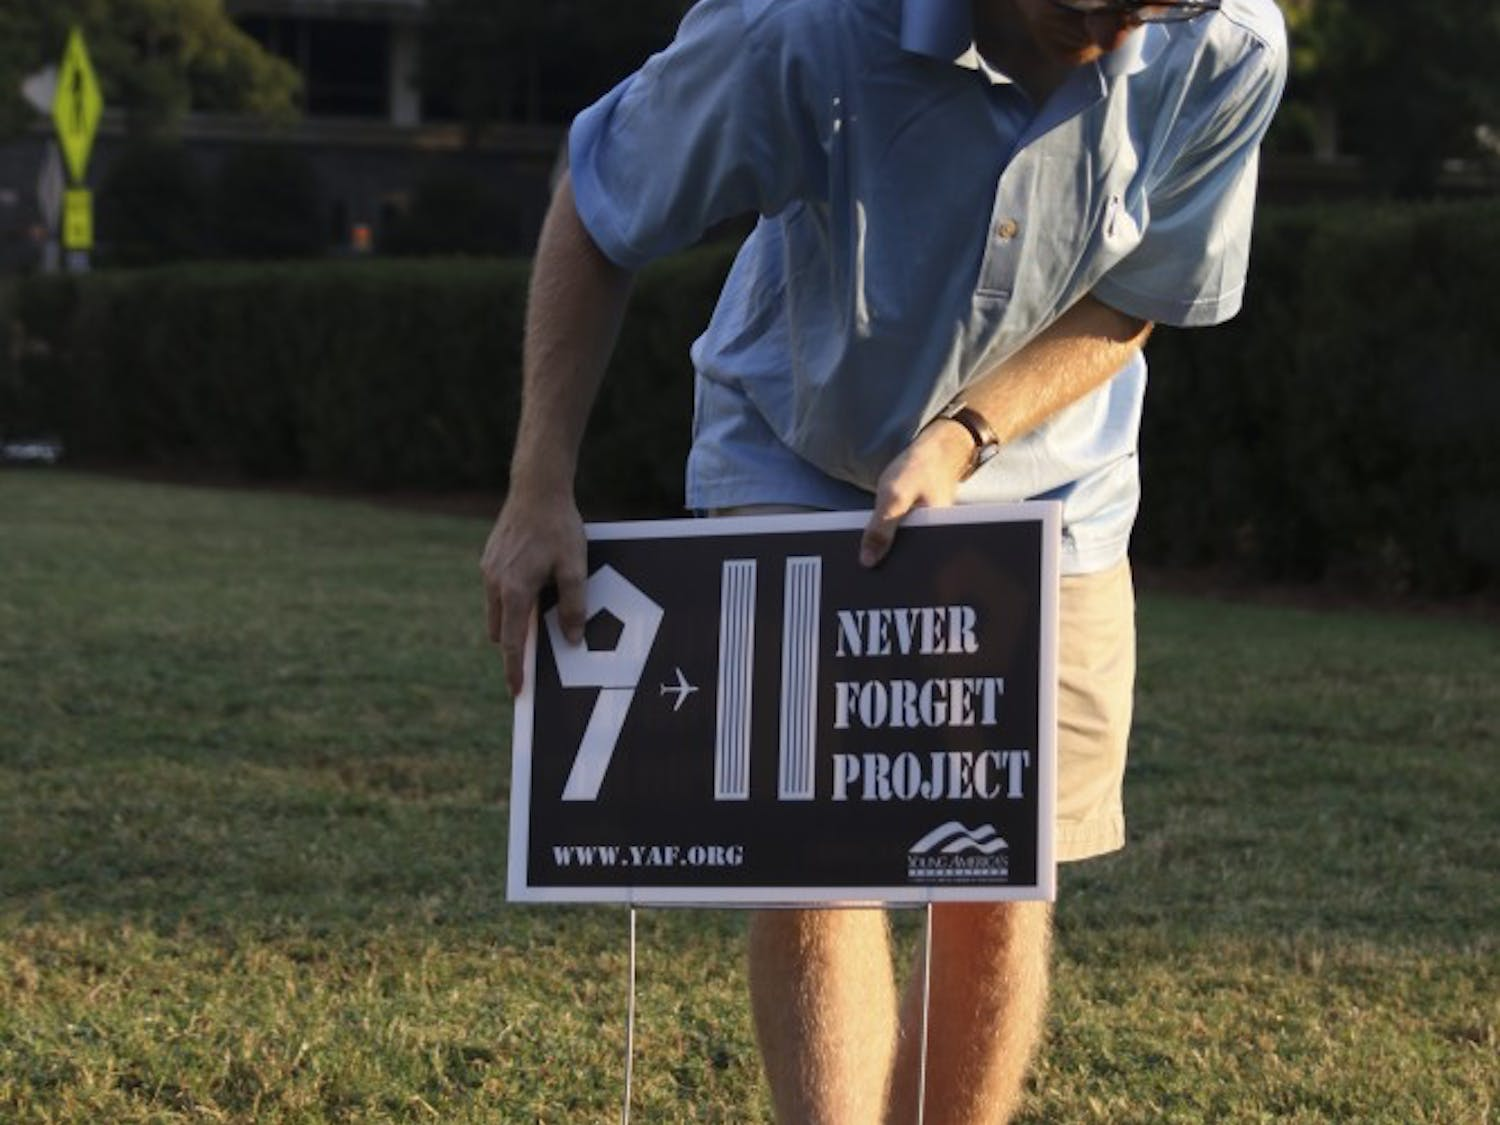 The UNC College Republicans placed America flags in the grass in front of the bell tower on Sunday morning to honor the victims of the terrorist attacks on 9/11.